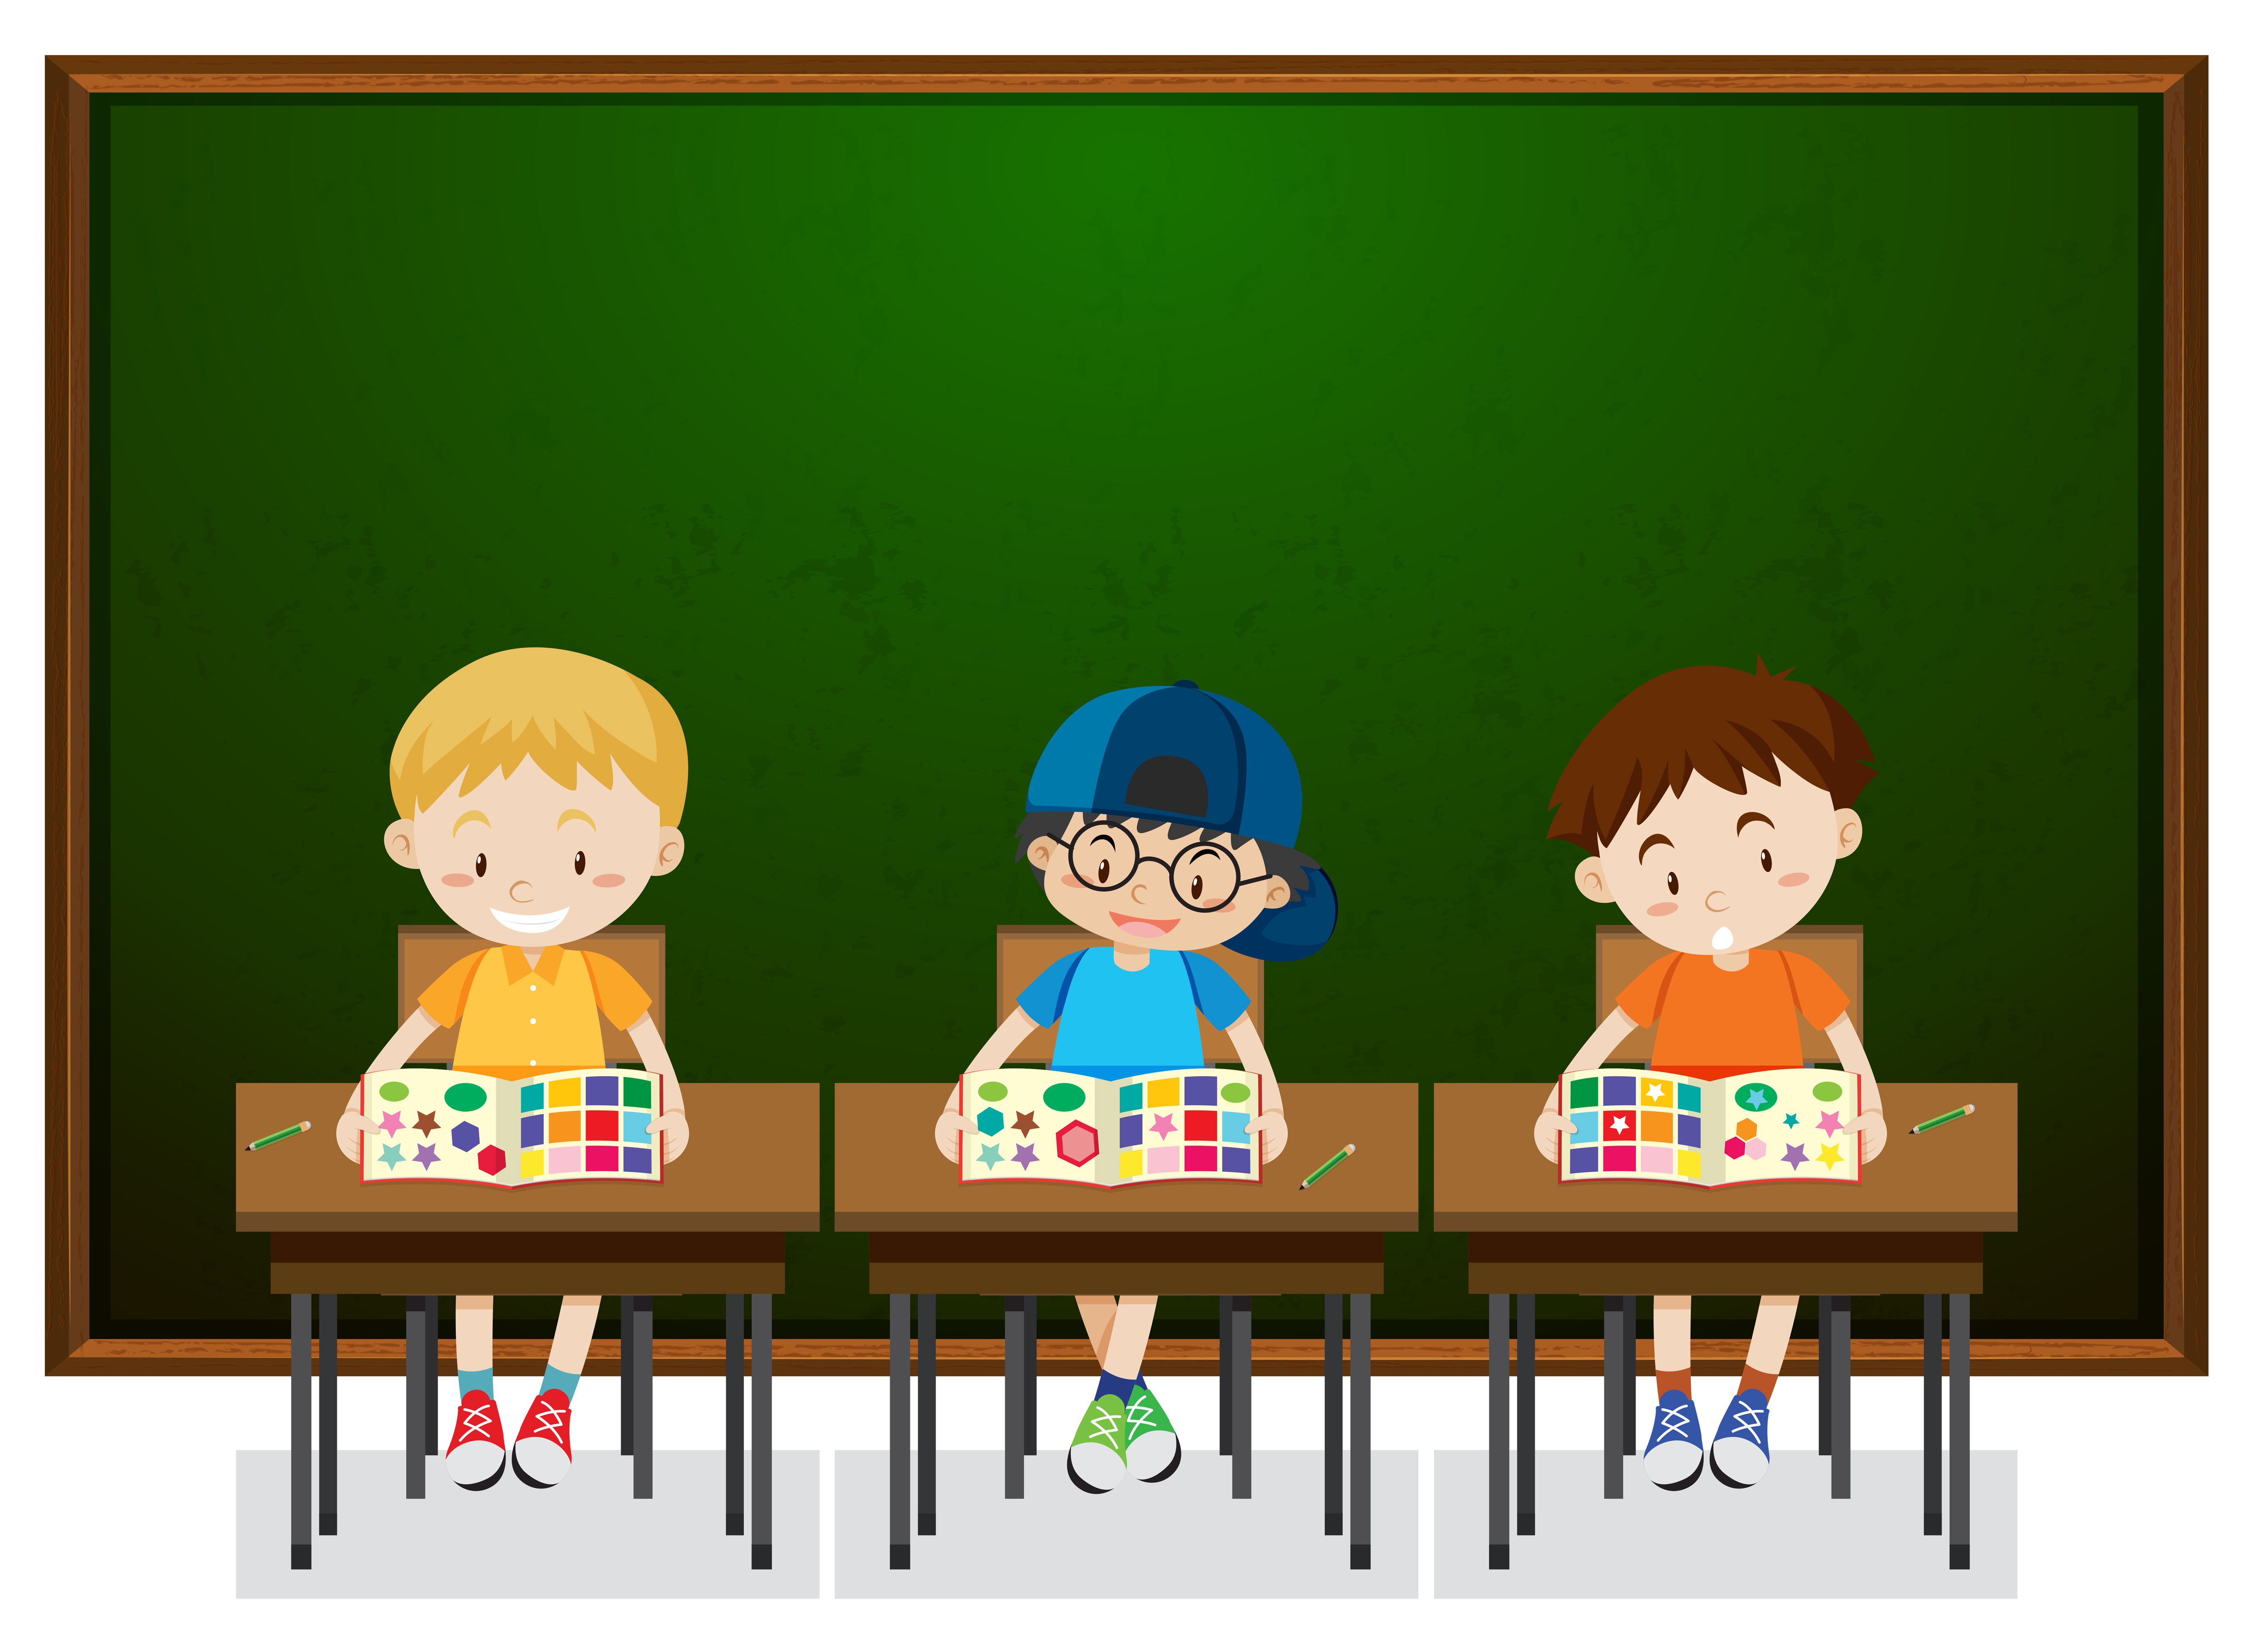 students studying in classroom download free vector art